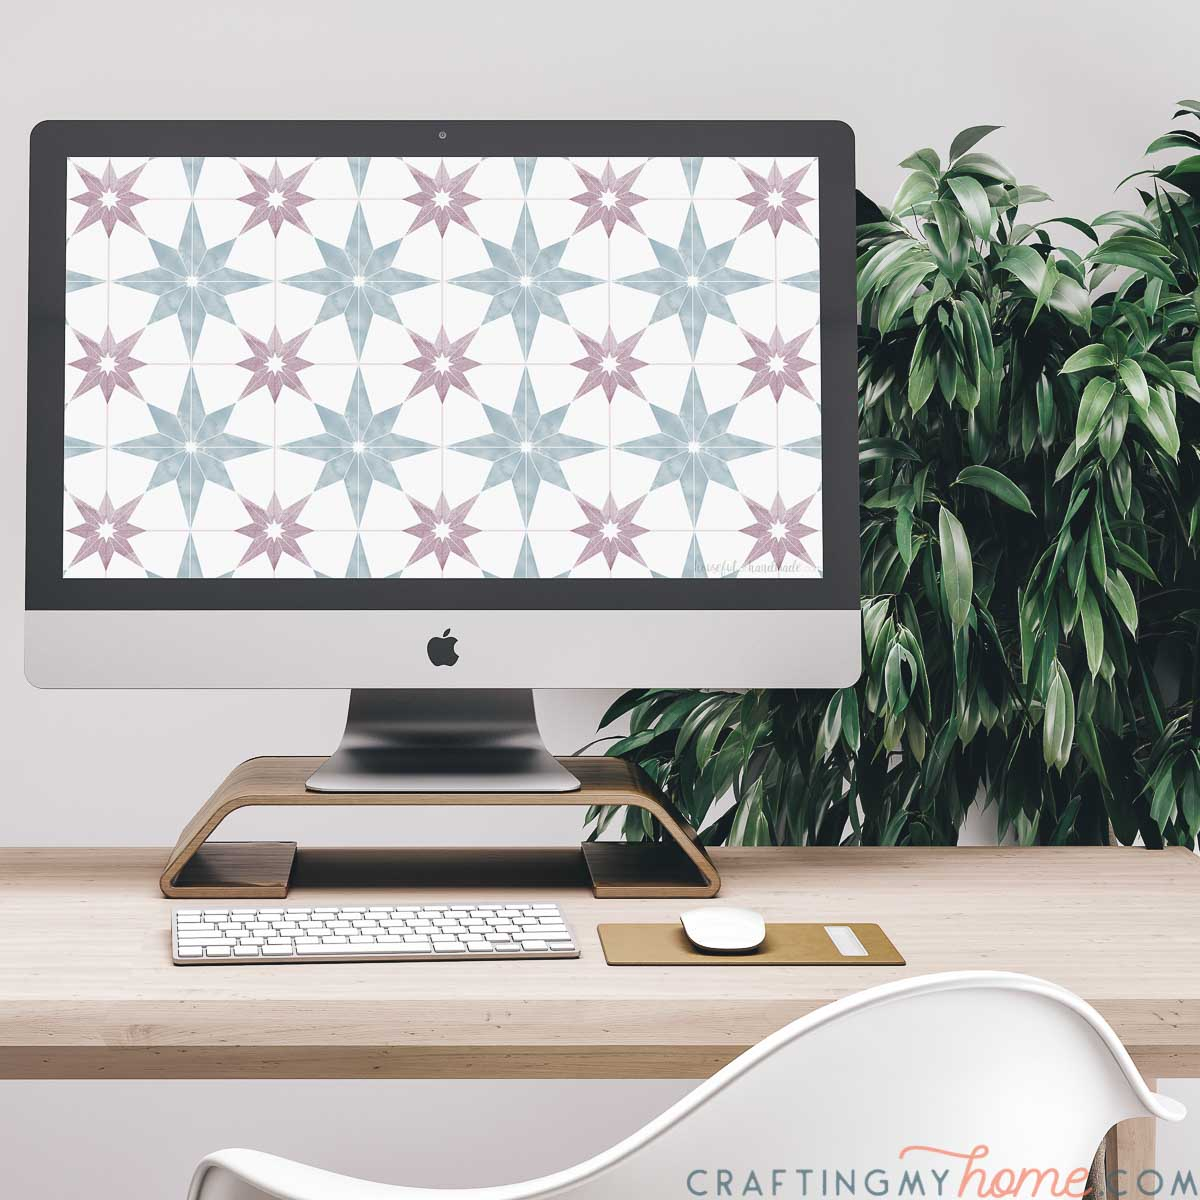 The free digital background for March on the screen of an iMac computer sitting on a desk with a plant behind it.